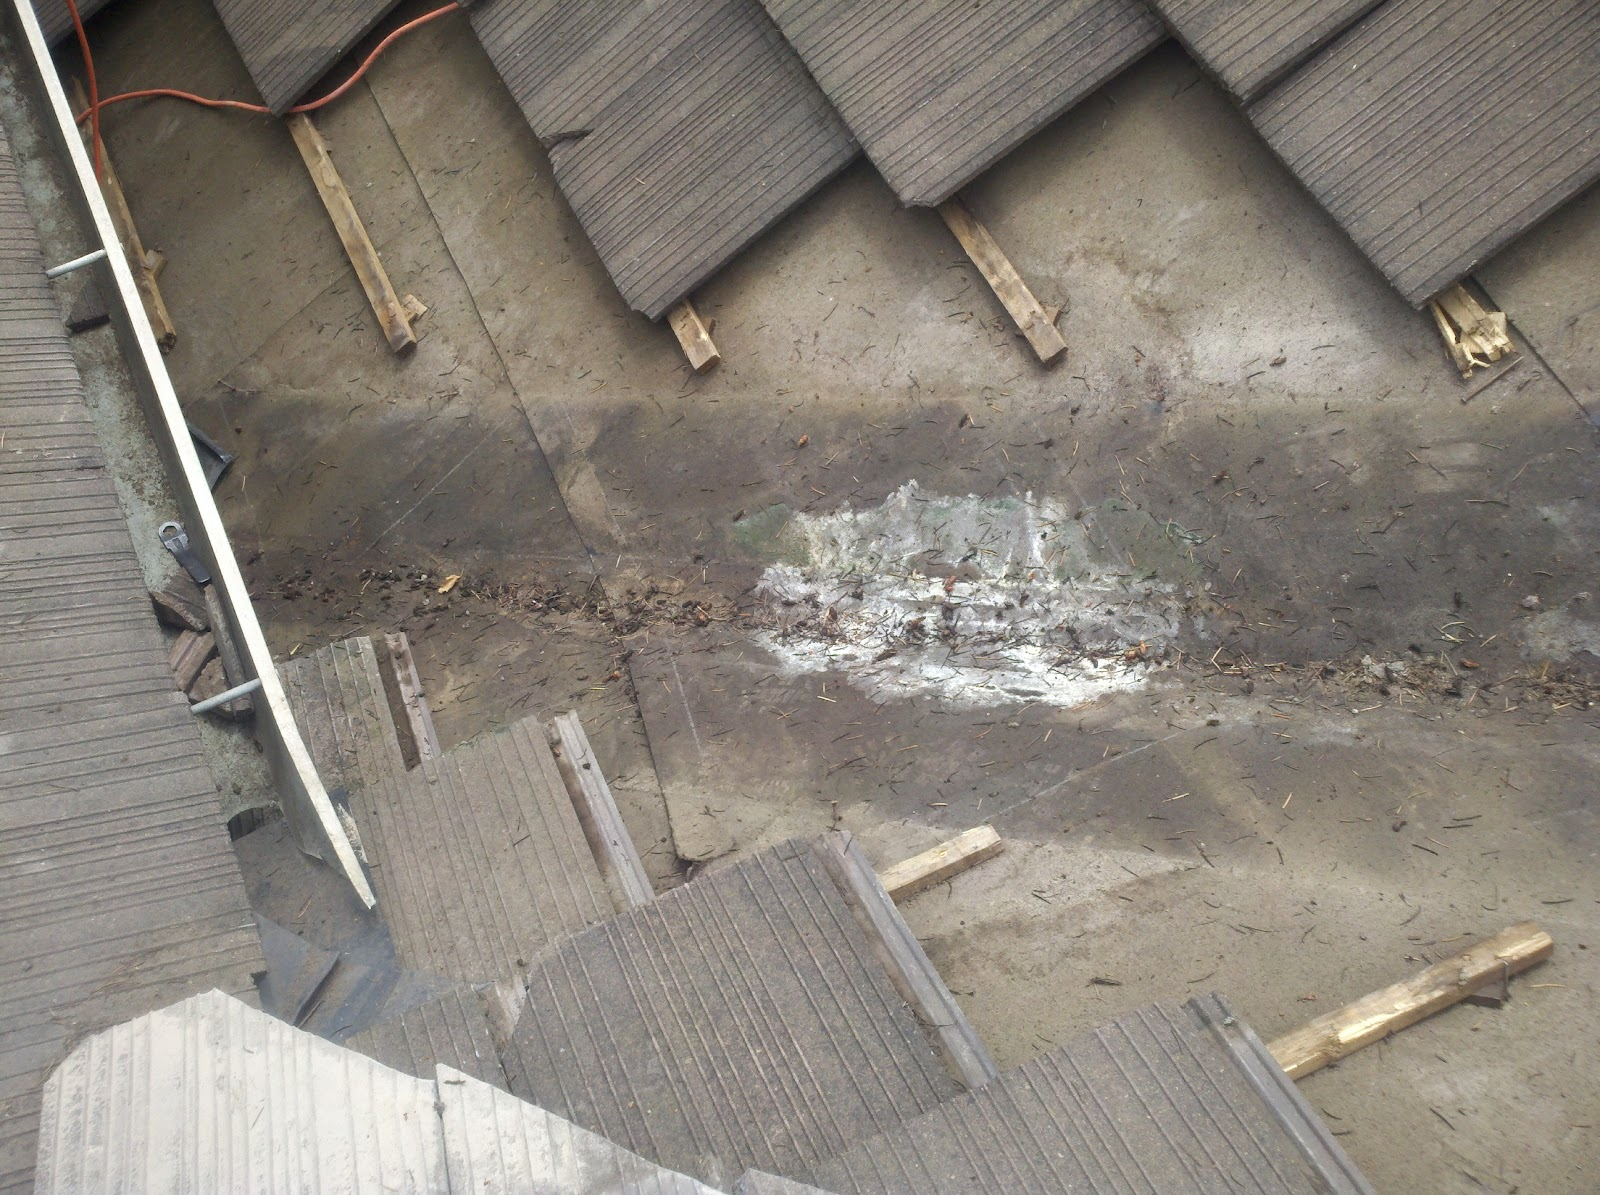 Repair Roofing Felt Under Tiles 12 300 About Roof